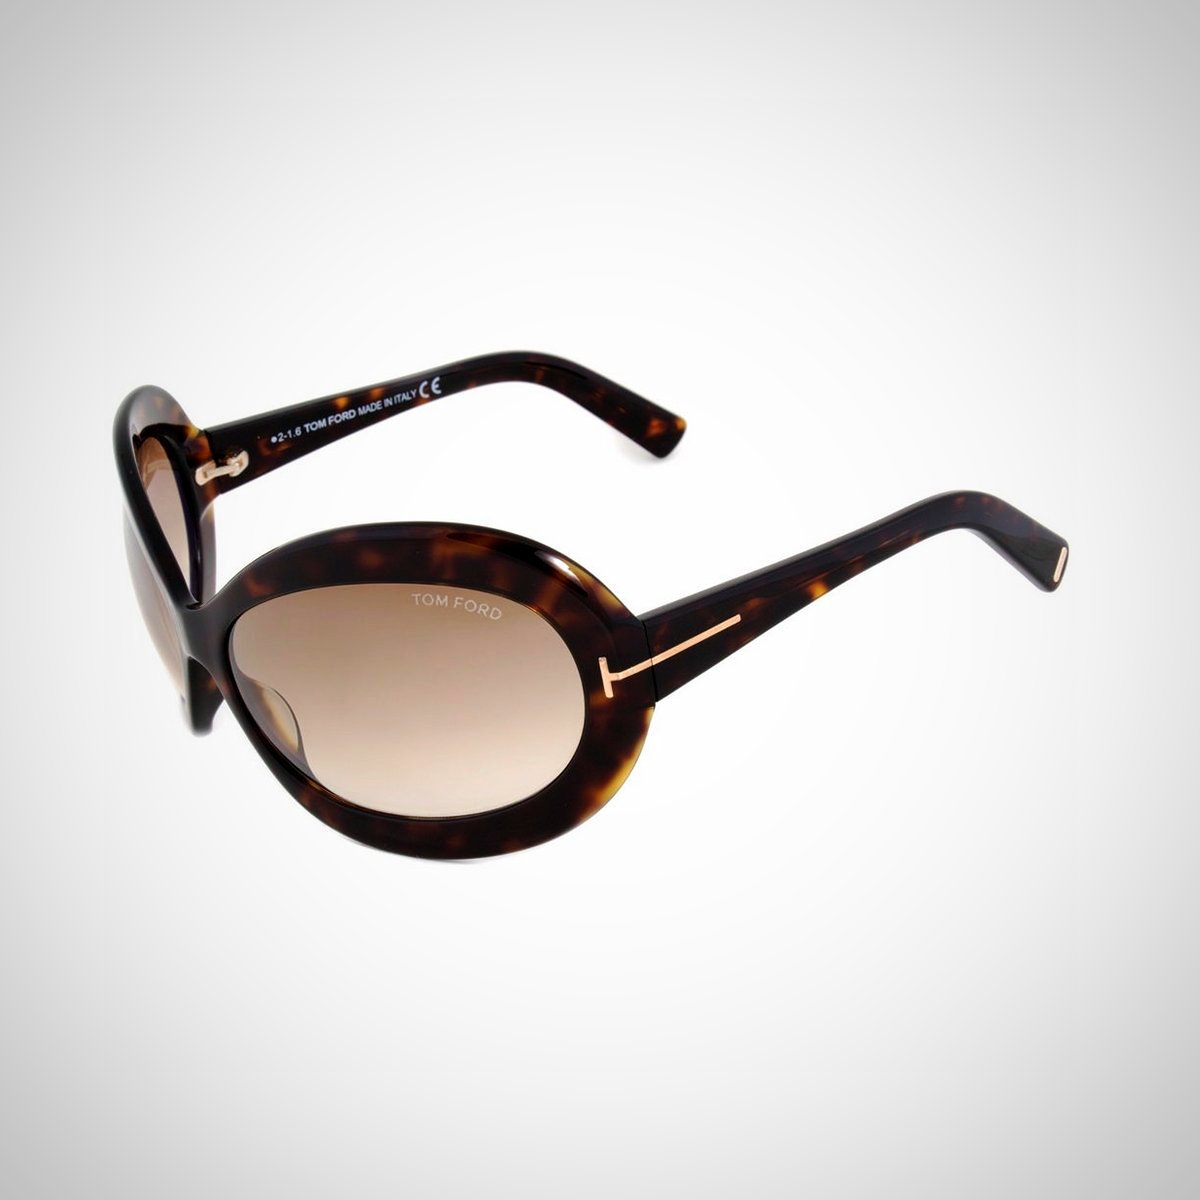 Tom Ford FT0428 52F 68 Ladies Dark Havana Sunglasses